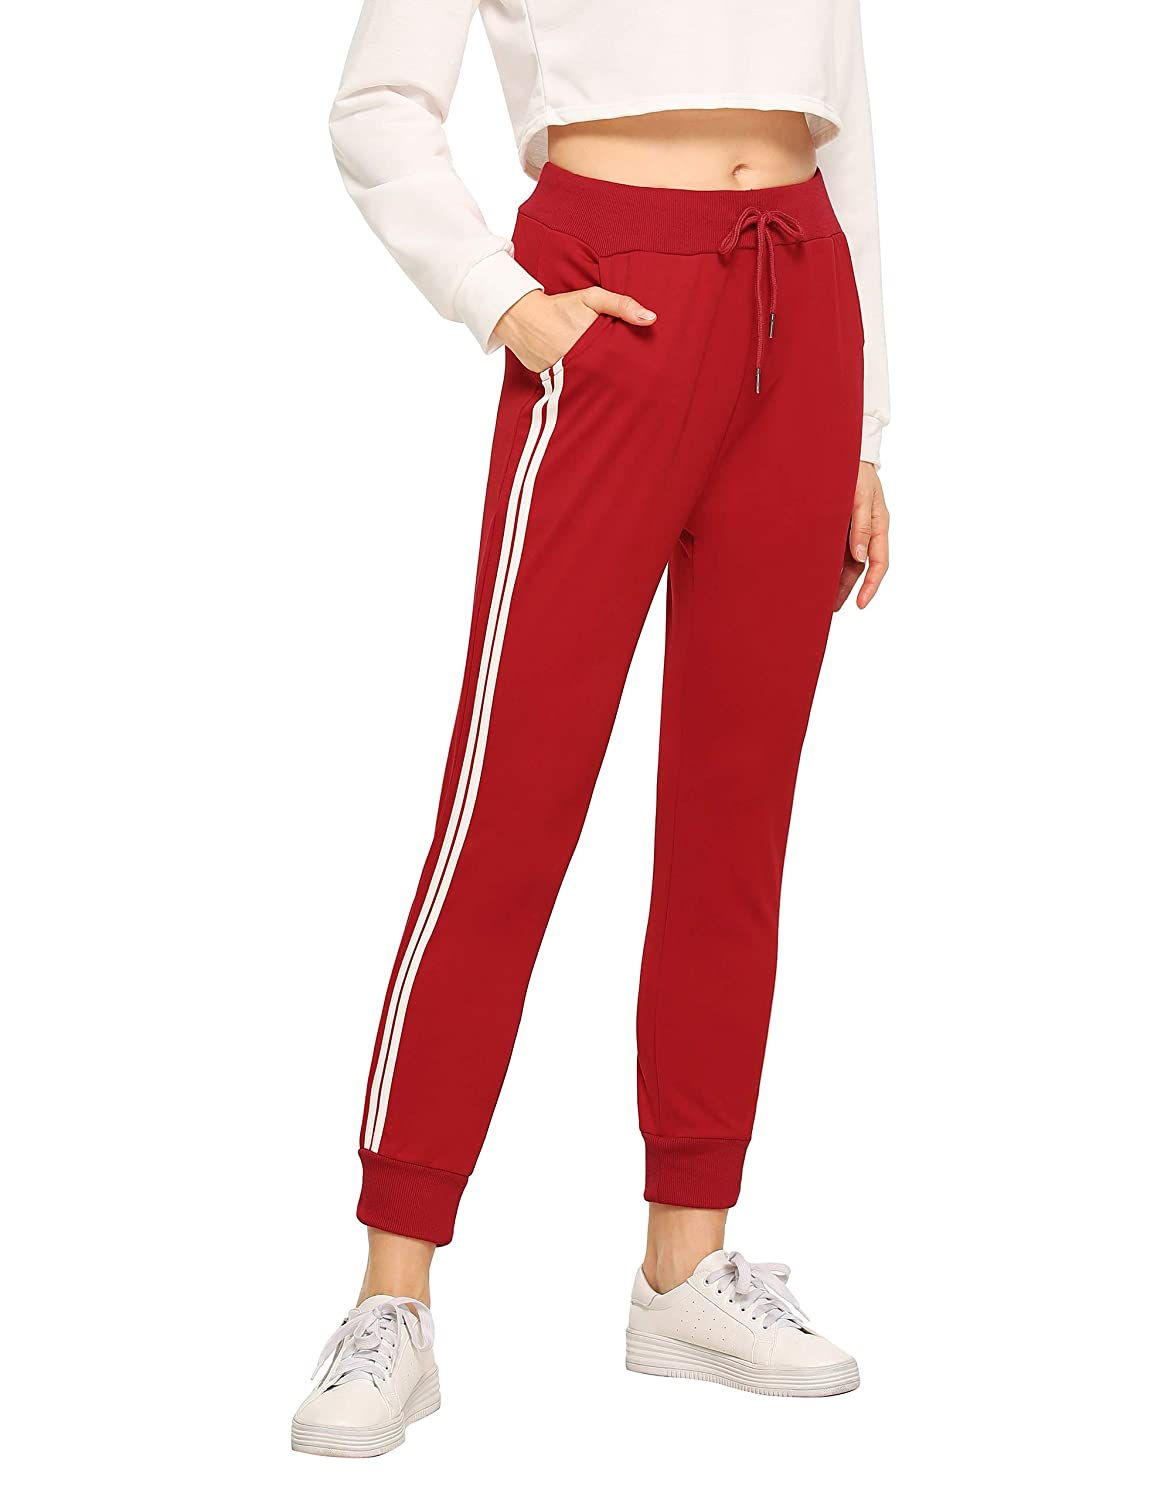 red Tracking Pant